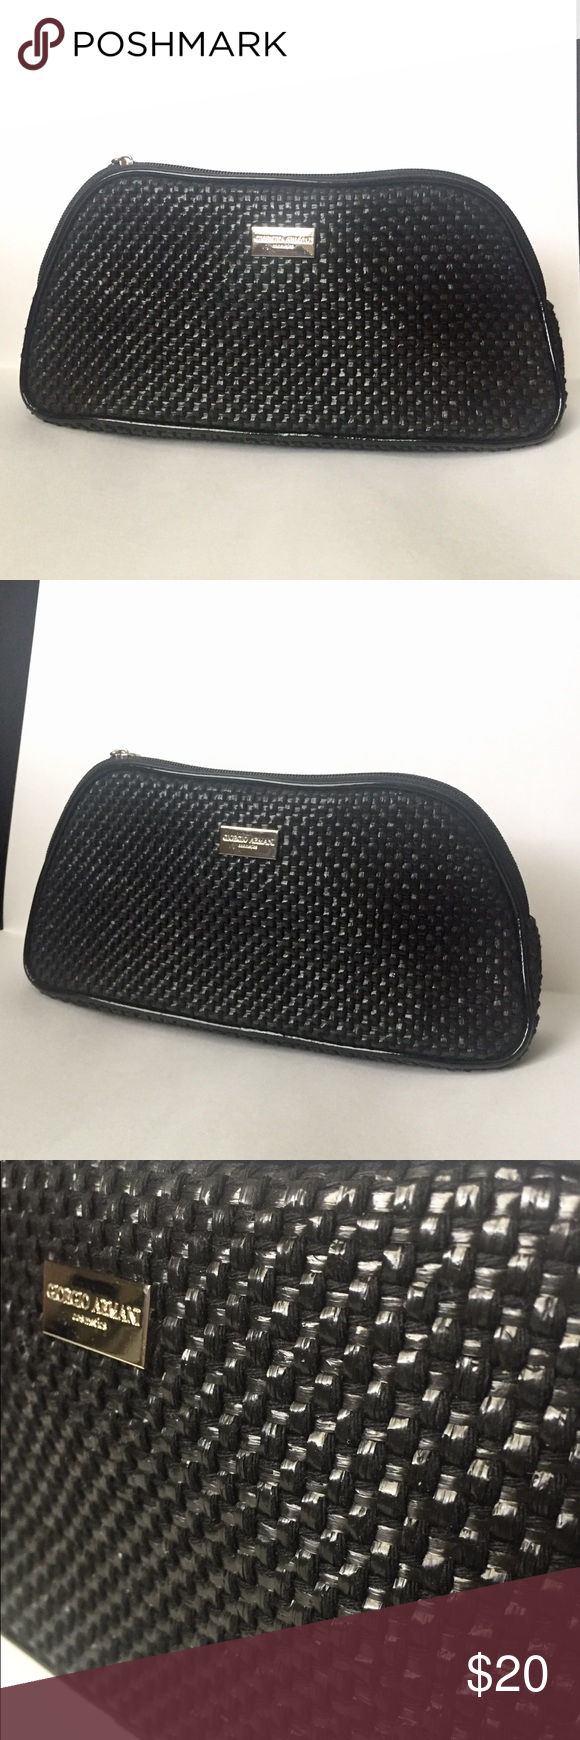 debda88c8760 Giorgio Armani Cosmetics Bag Beautiful texture. Small and lively Could use  as a clutch too Giorgio Armani Bags Cosmetic Bags   Cases